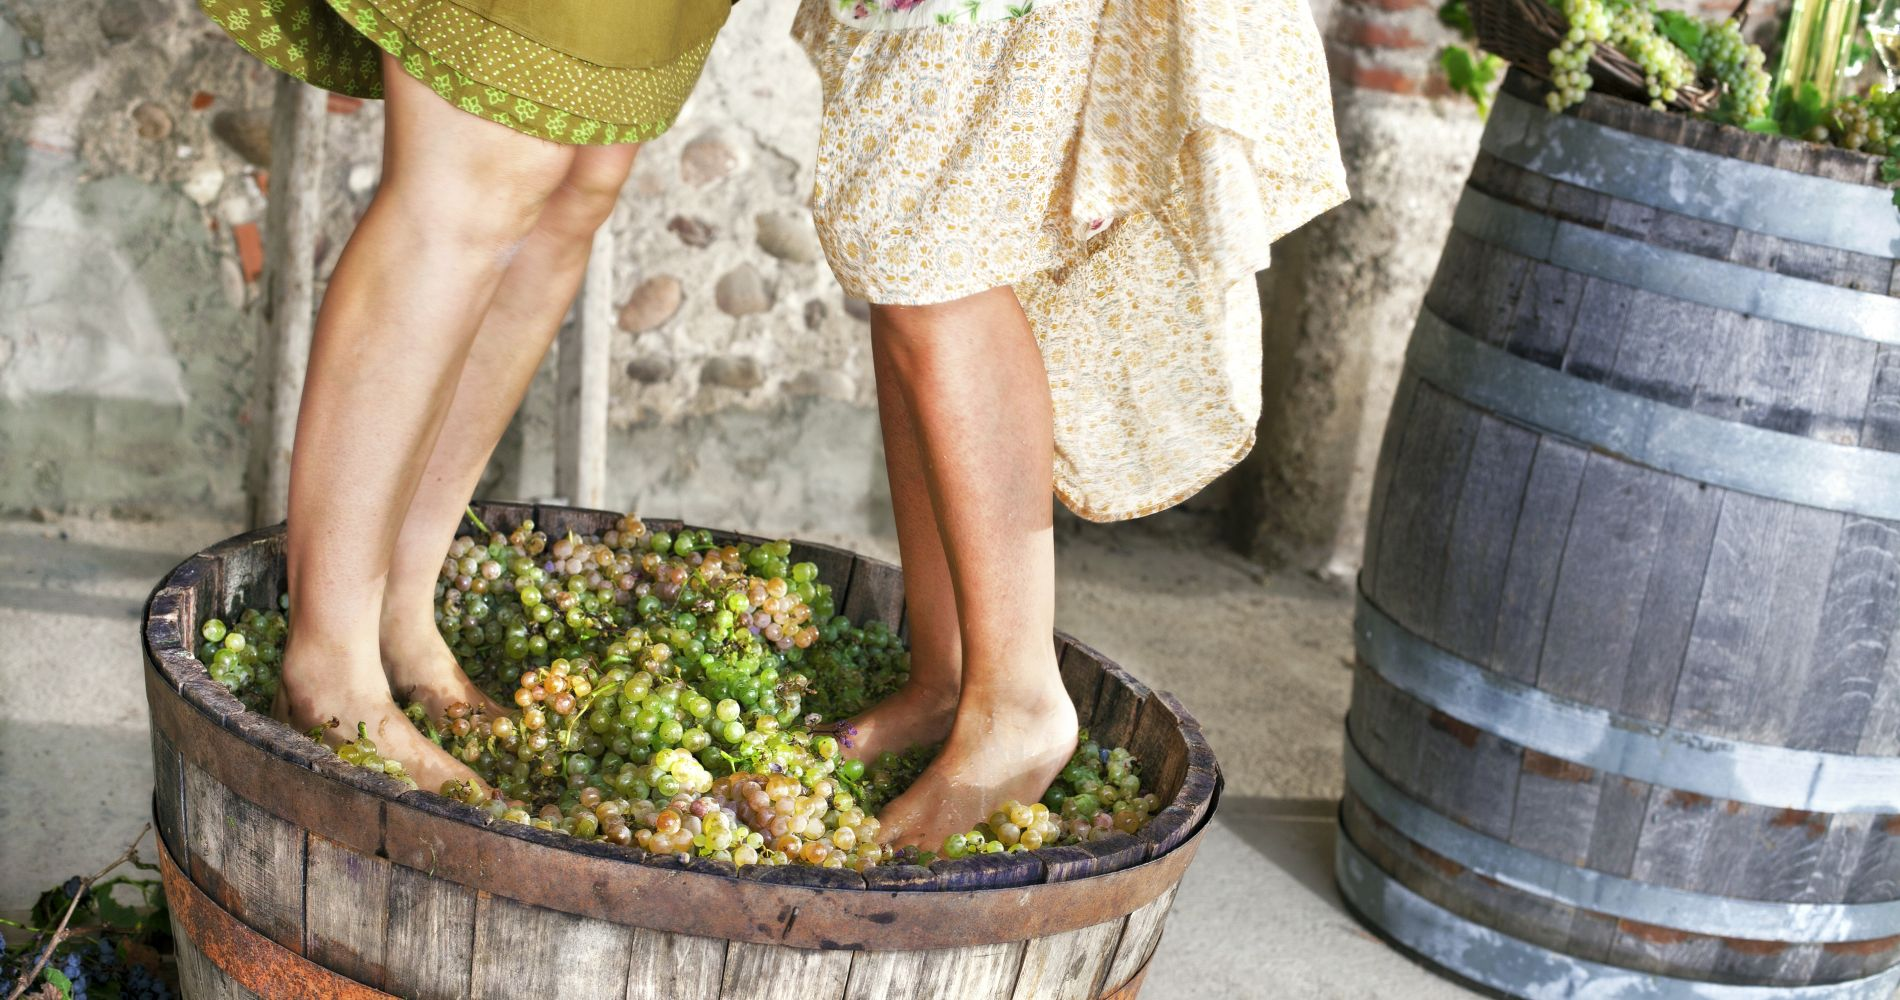 grape grapes stomp stomping france provence gift idea